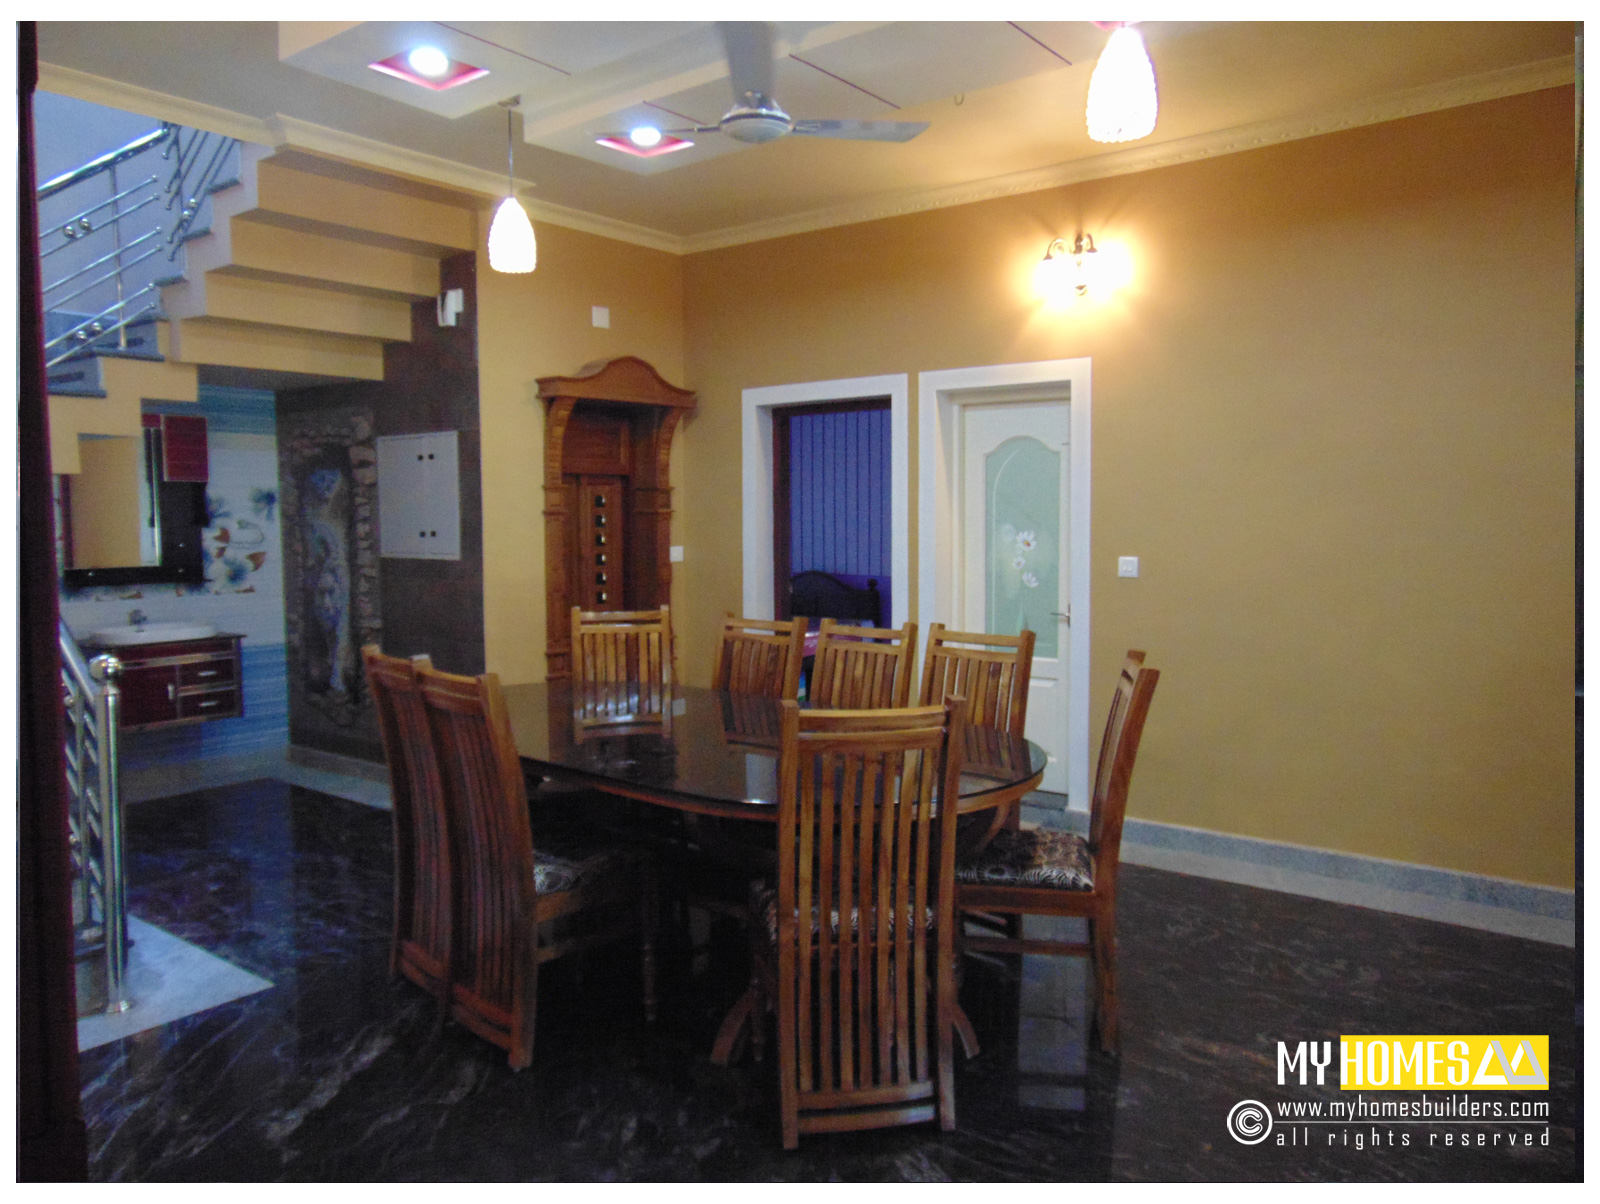 Kerala Dining Area Design